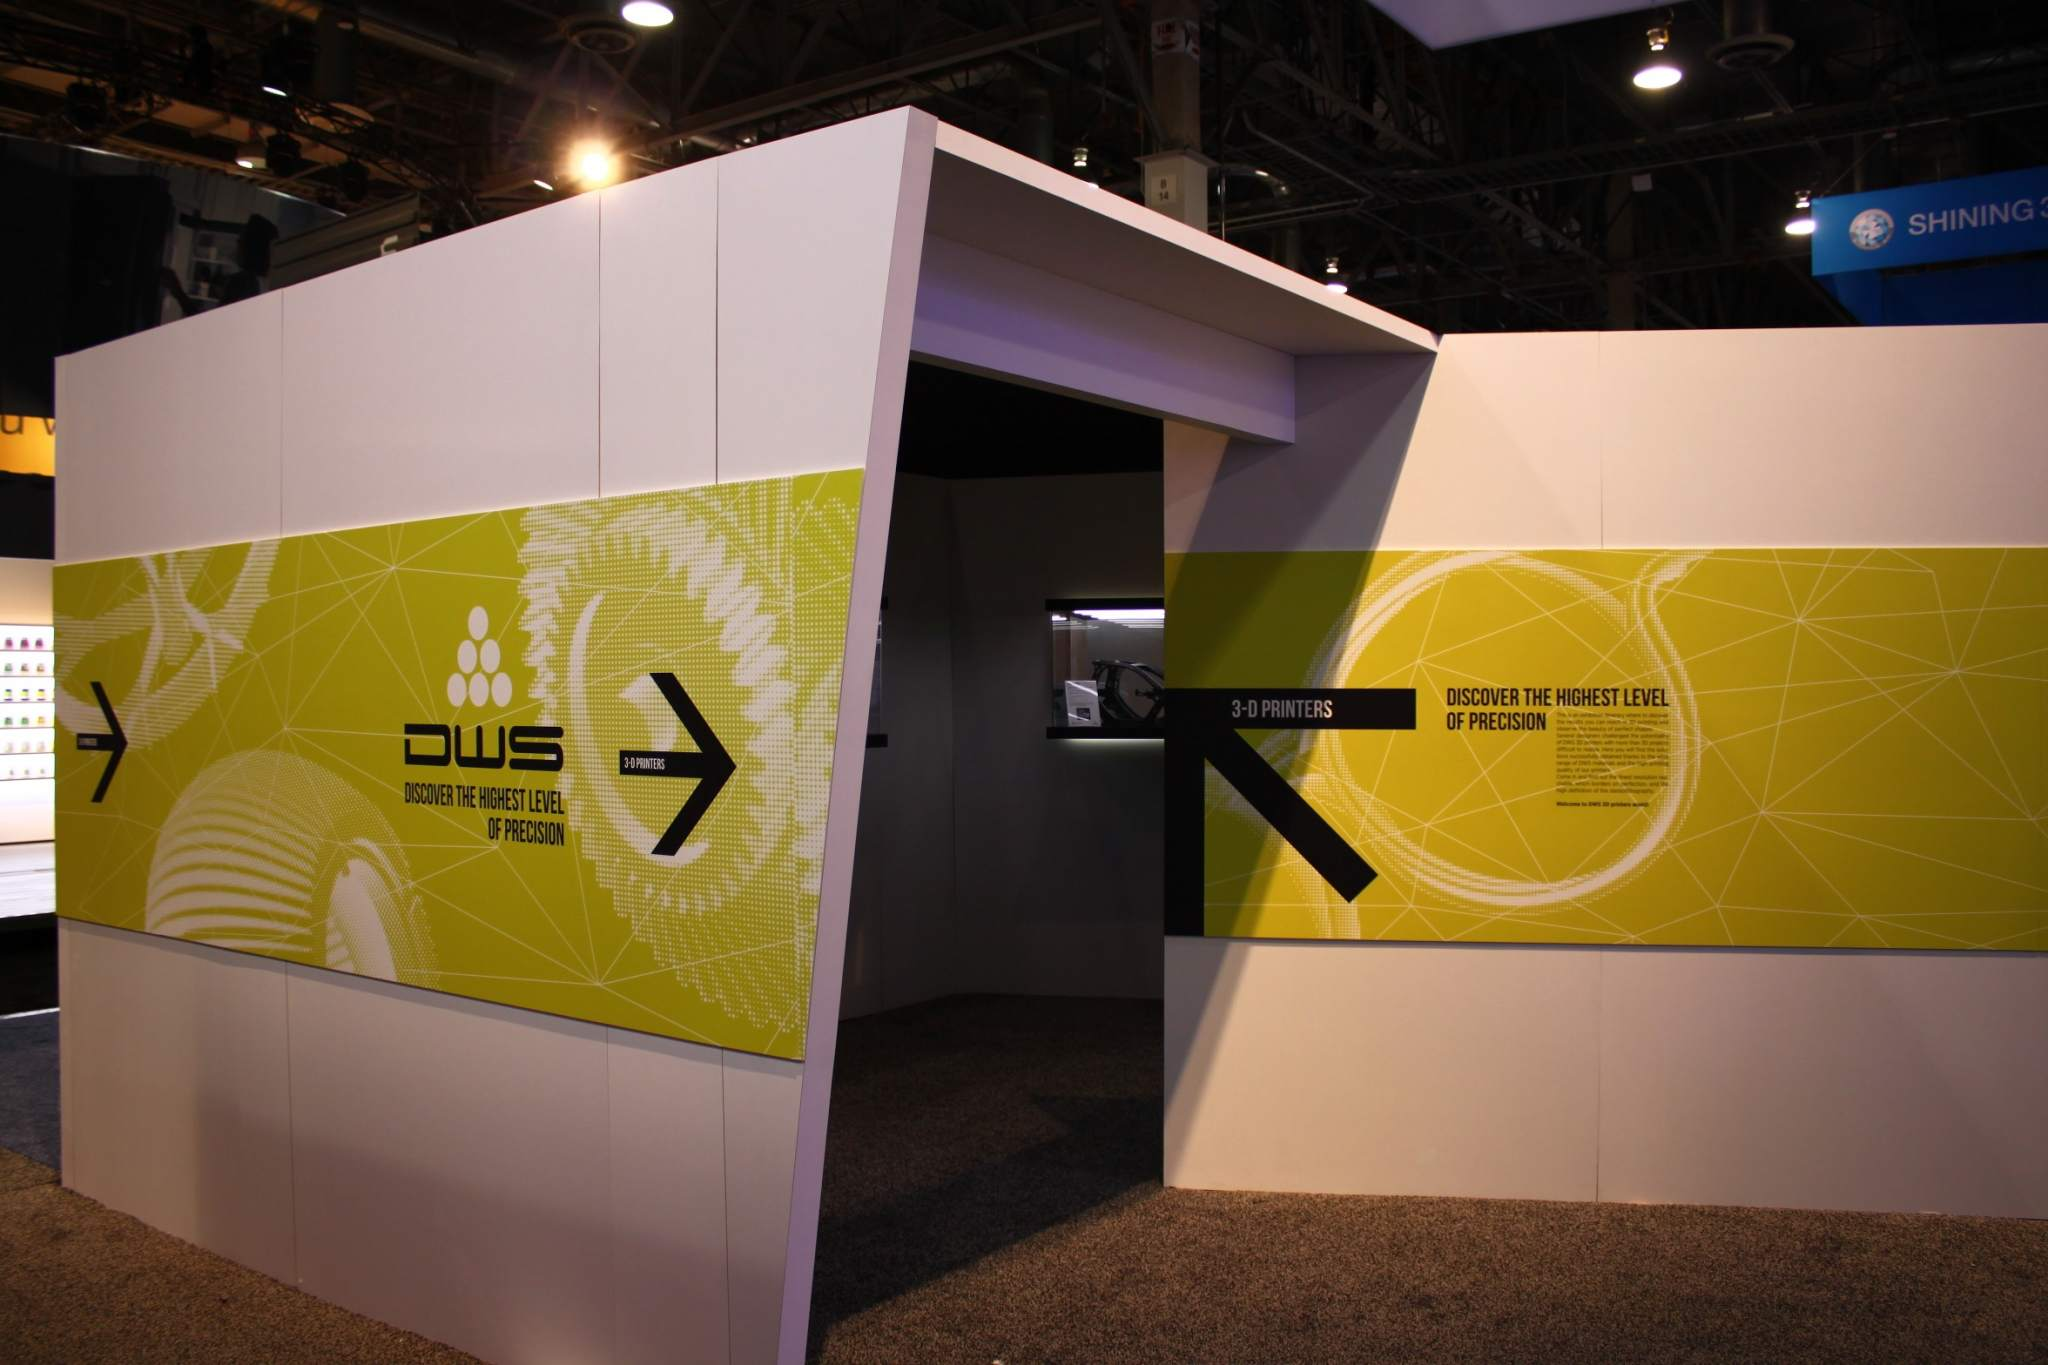 Entering the DWS booth at CES. Photo via DWS.